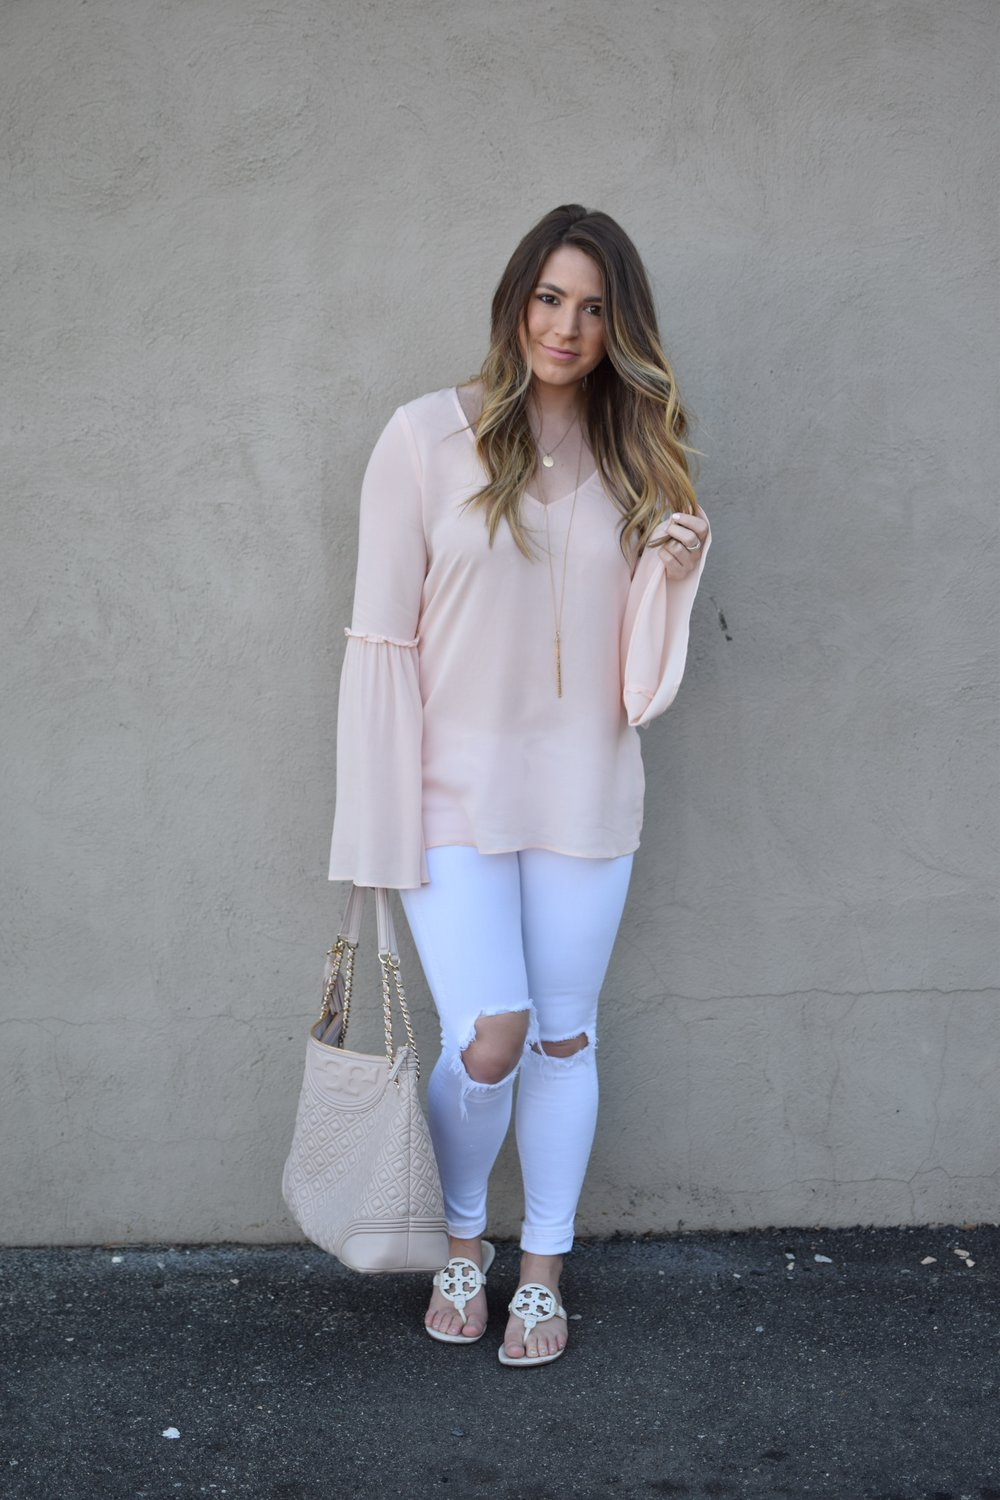 blush bell sleeve top & white distressed denim / tory burch miller sandal / spring outfit idea